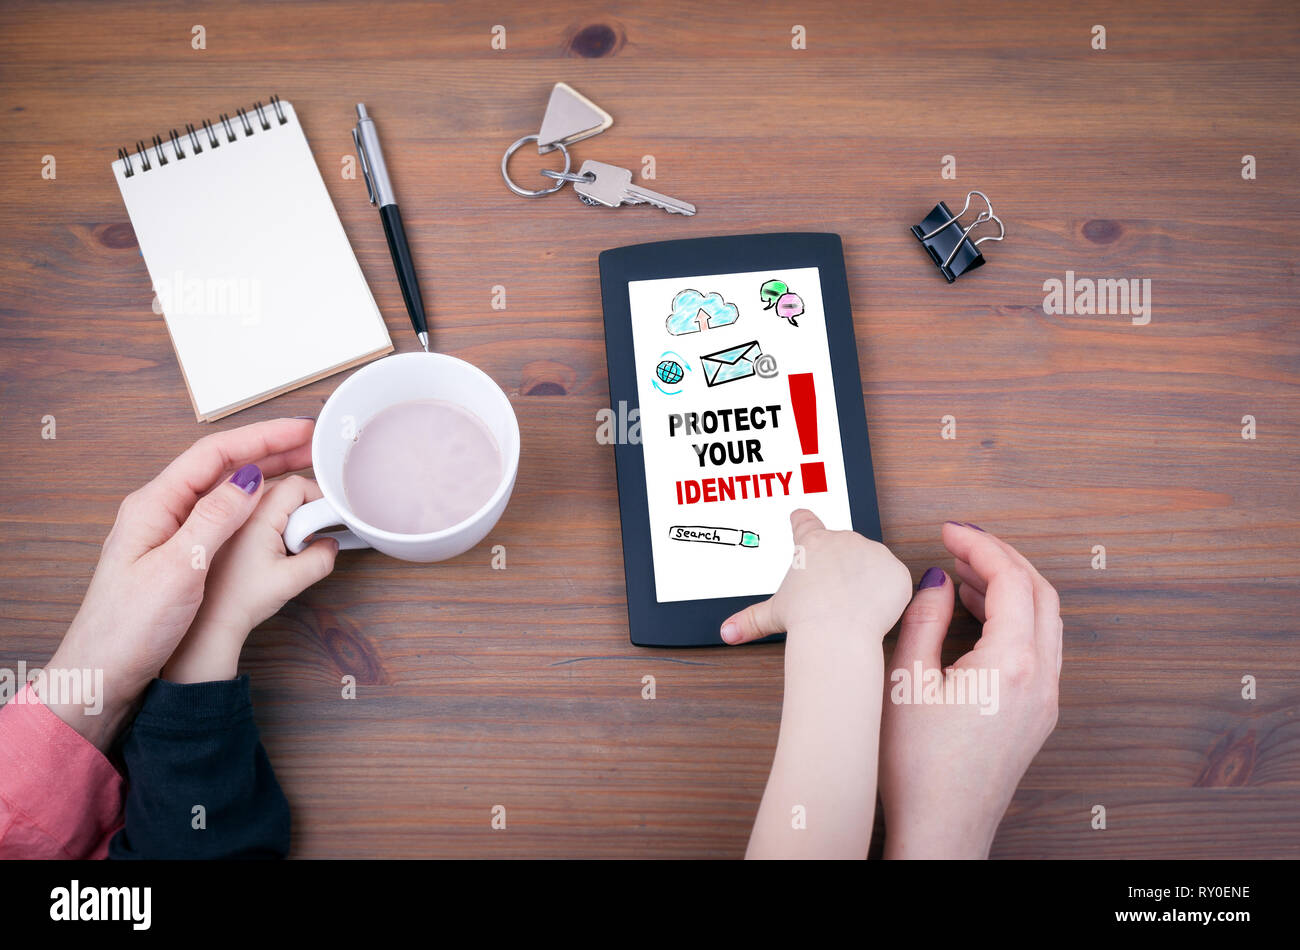 Protect your identity - Stock Image